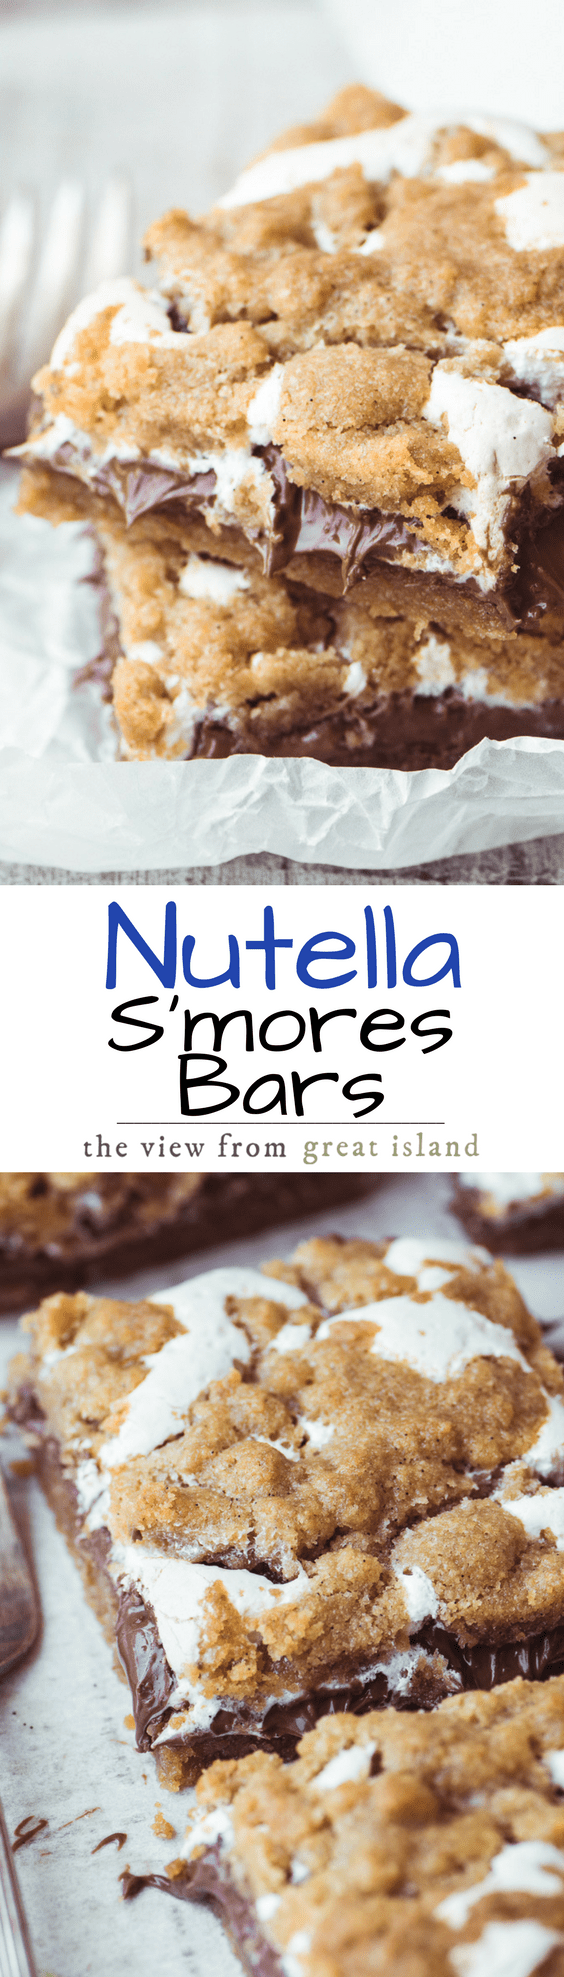 Nutella S'mores Bars ~ everybody's favorite summer treat in an ooey, gooey, decadent, and delicious bar, no campfire needed! Make a batch and watch them disappear before your eyes. #baking #Nutella #s'mores #smores #bars #cake #nutelladessert #bestnutellabars #brownies #blondies #marshmallowfluff #dessert #easydessert